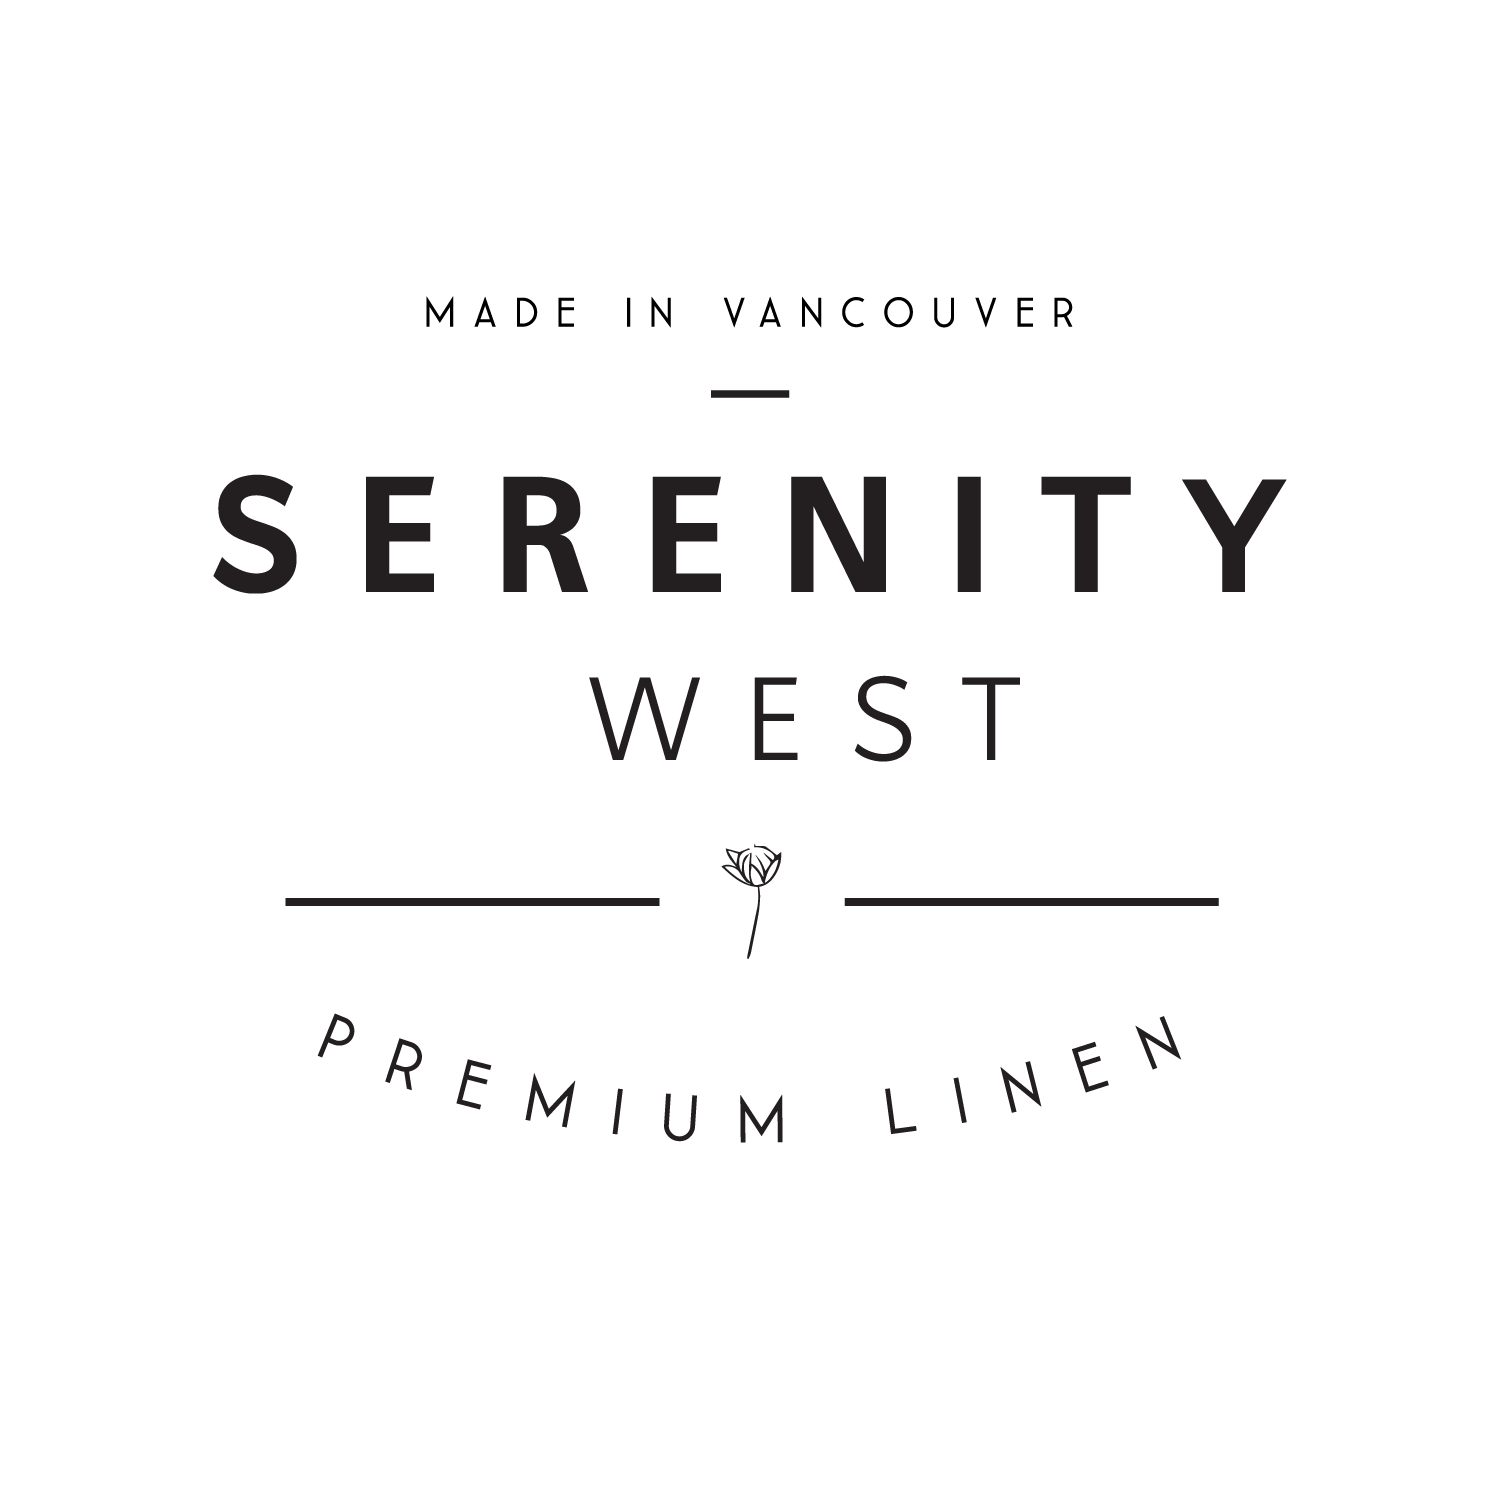 Serenity West